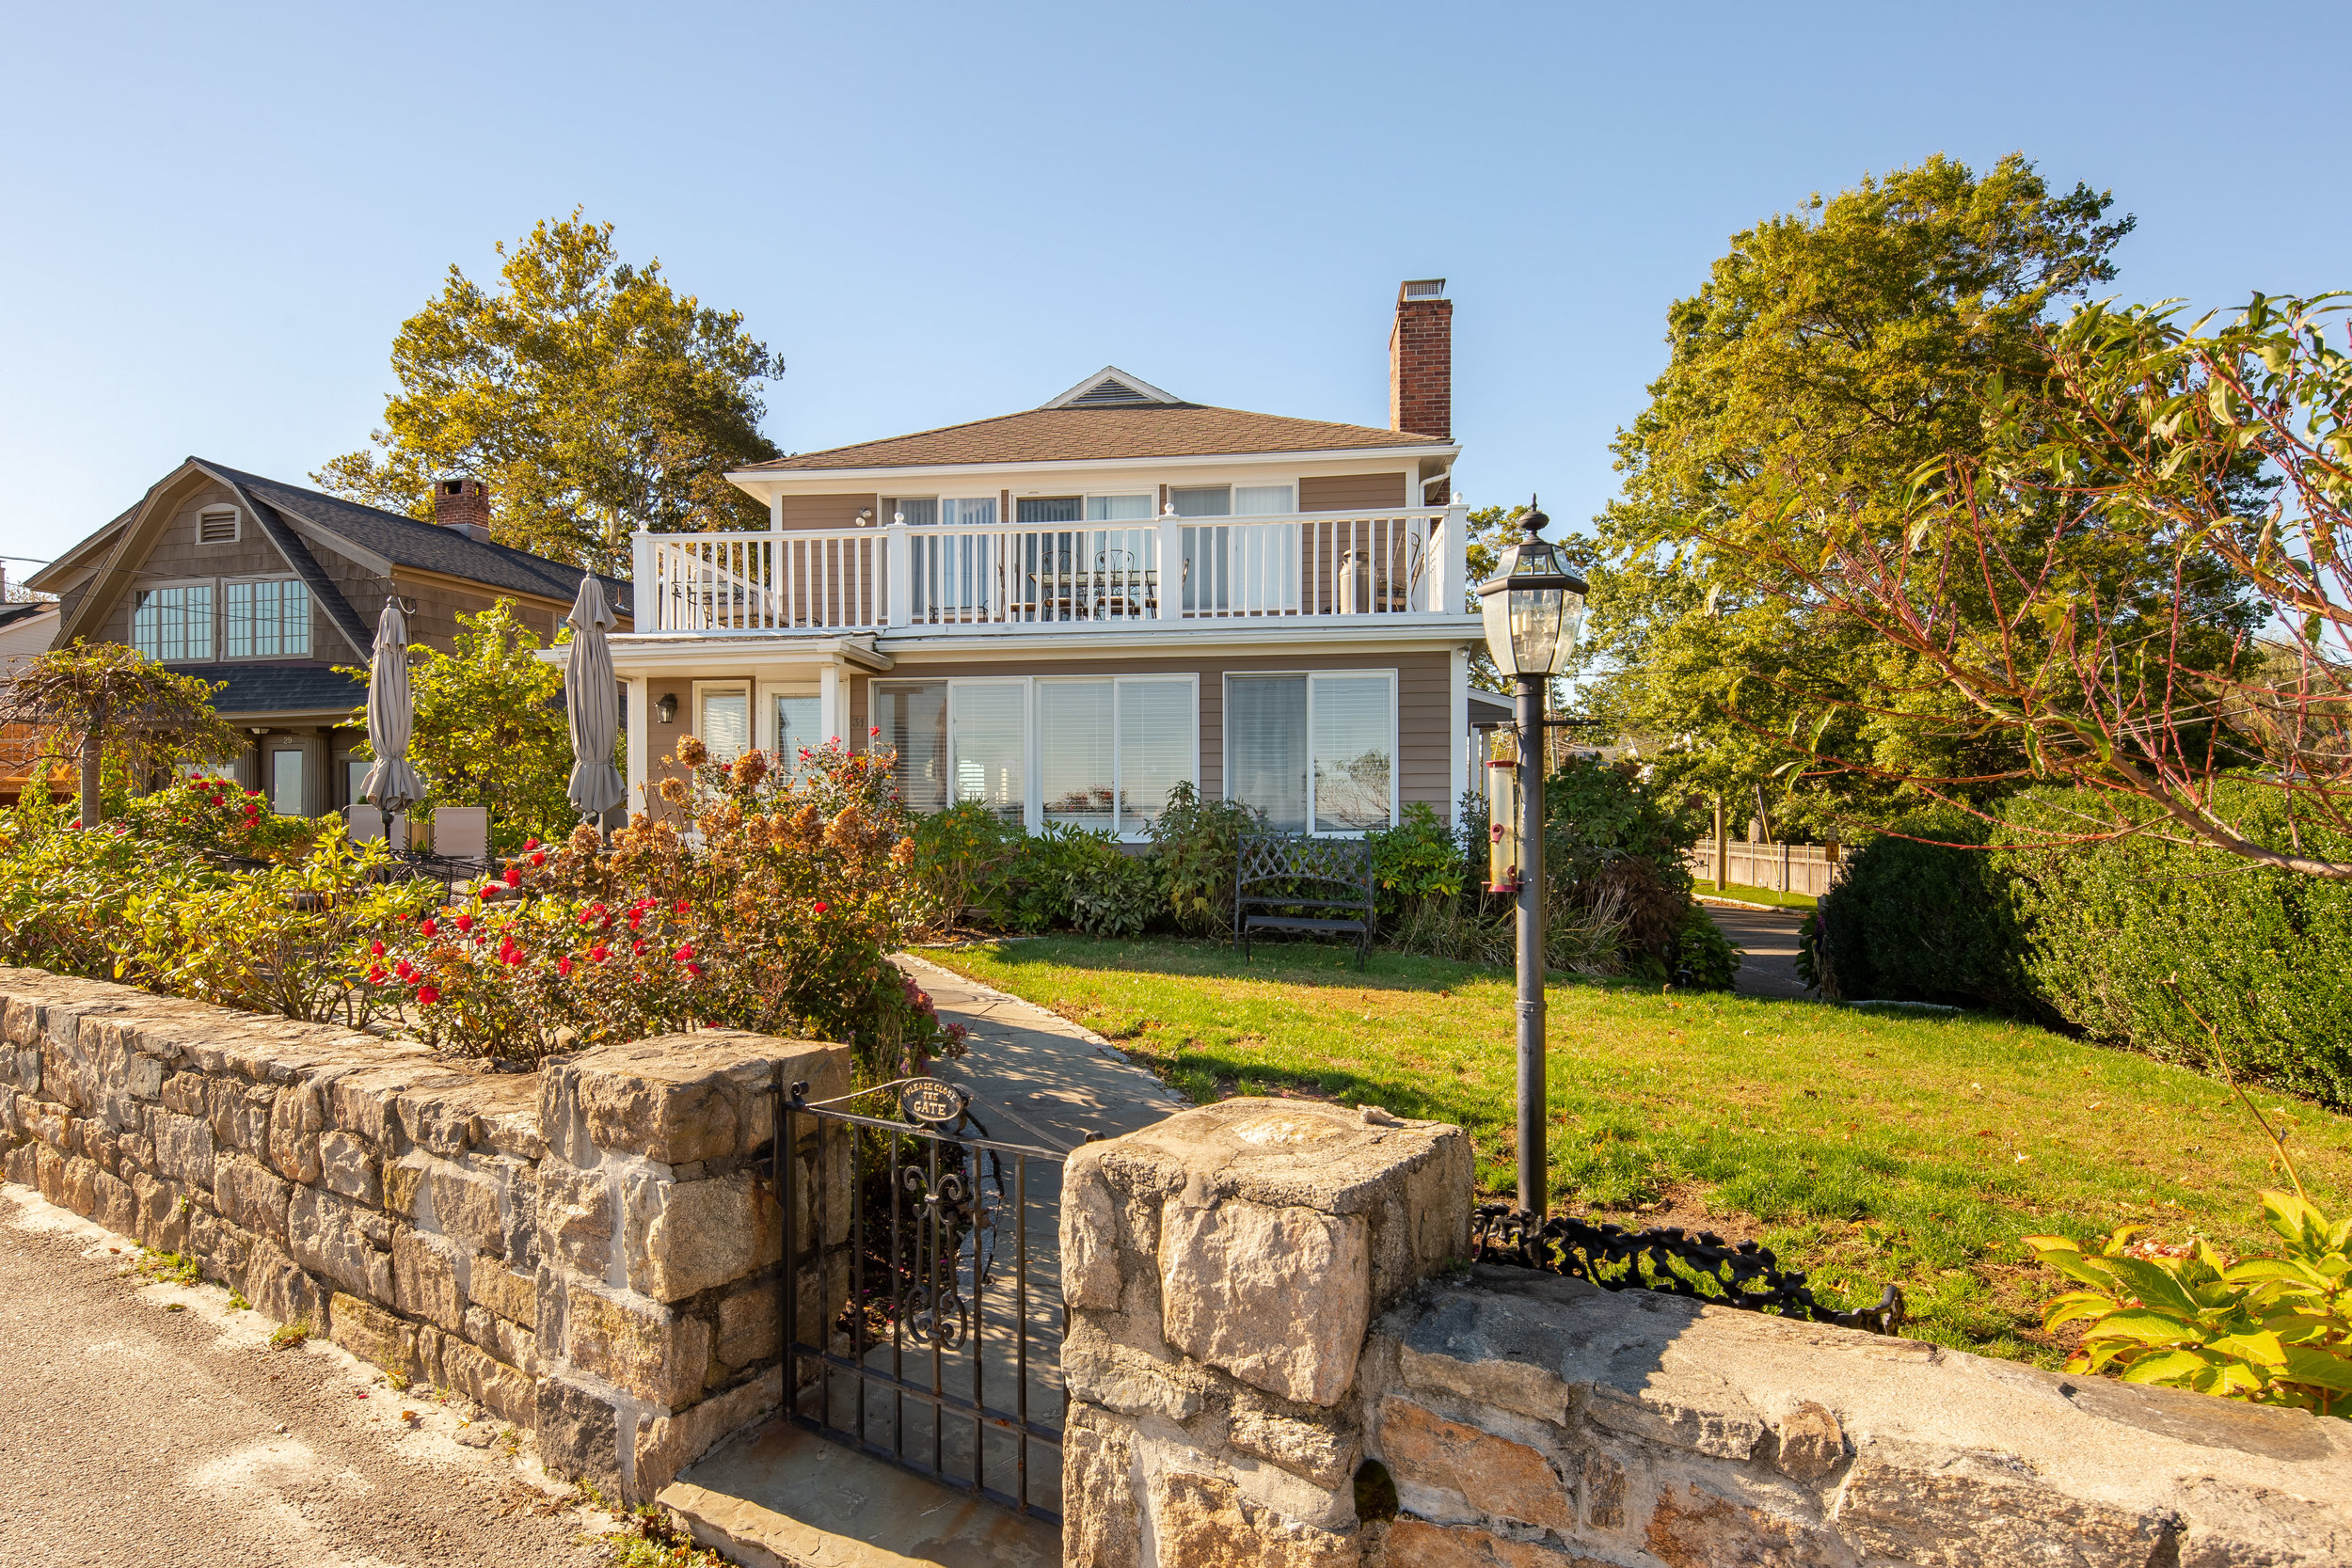 31-soundview-drive-Front-view-with-gate-1.jpg